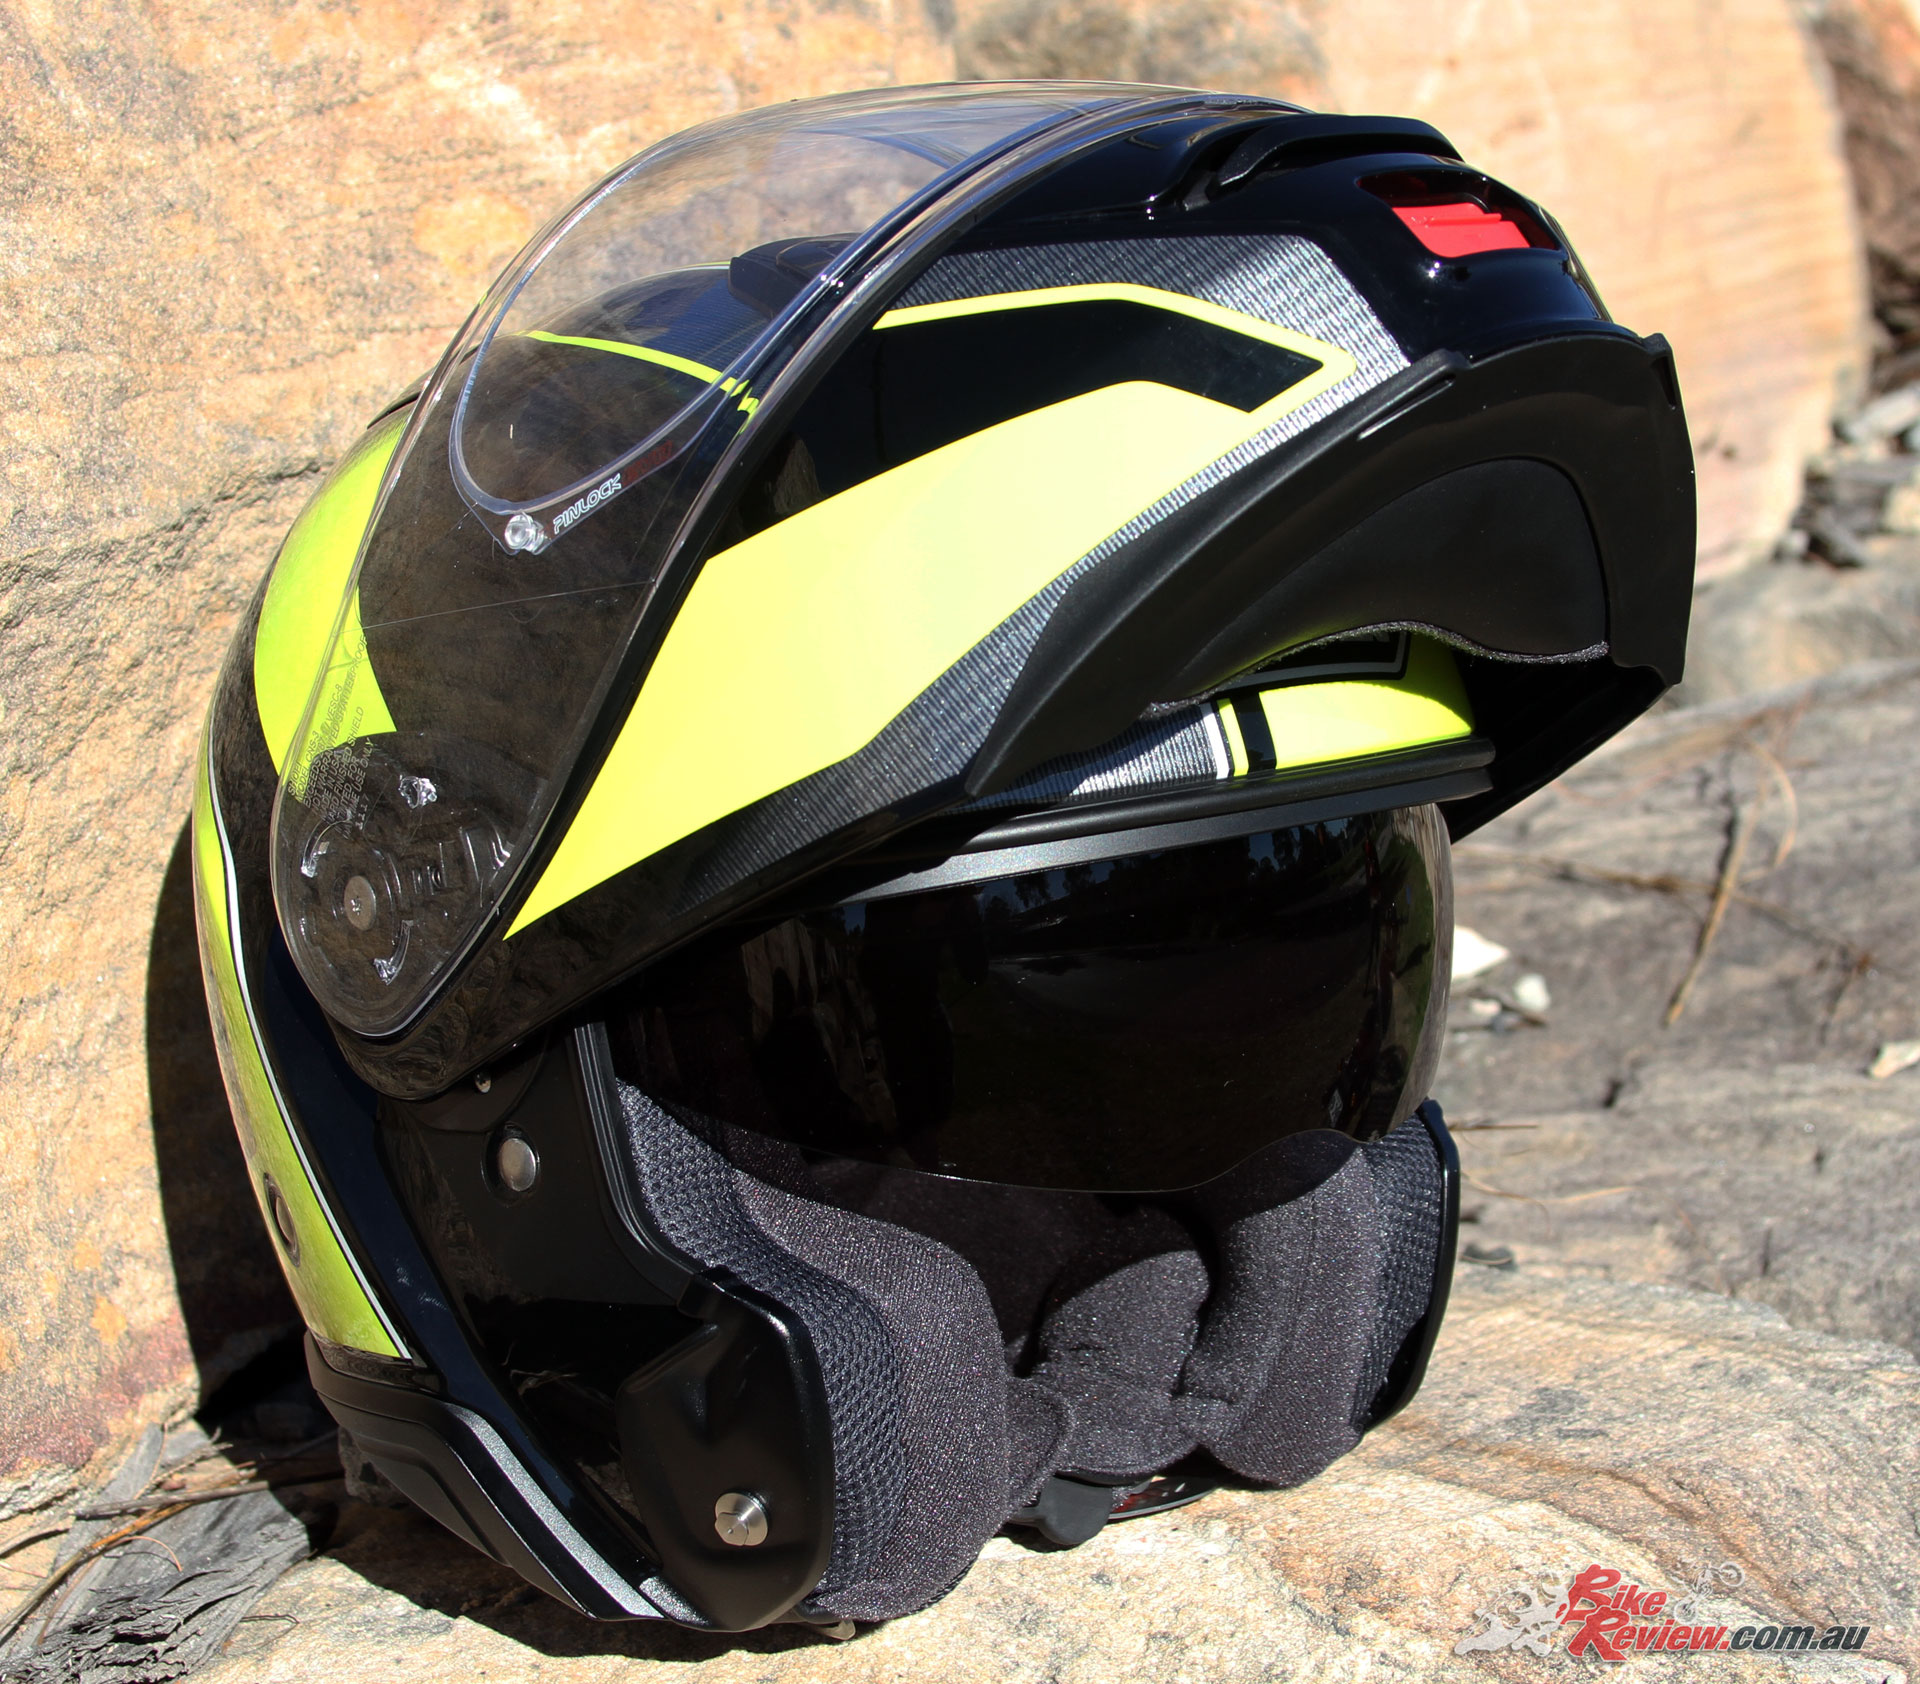 The Neotec II with the chin flipped up and internal sun visor extended.